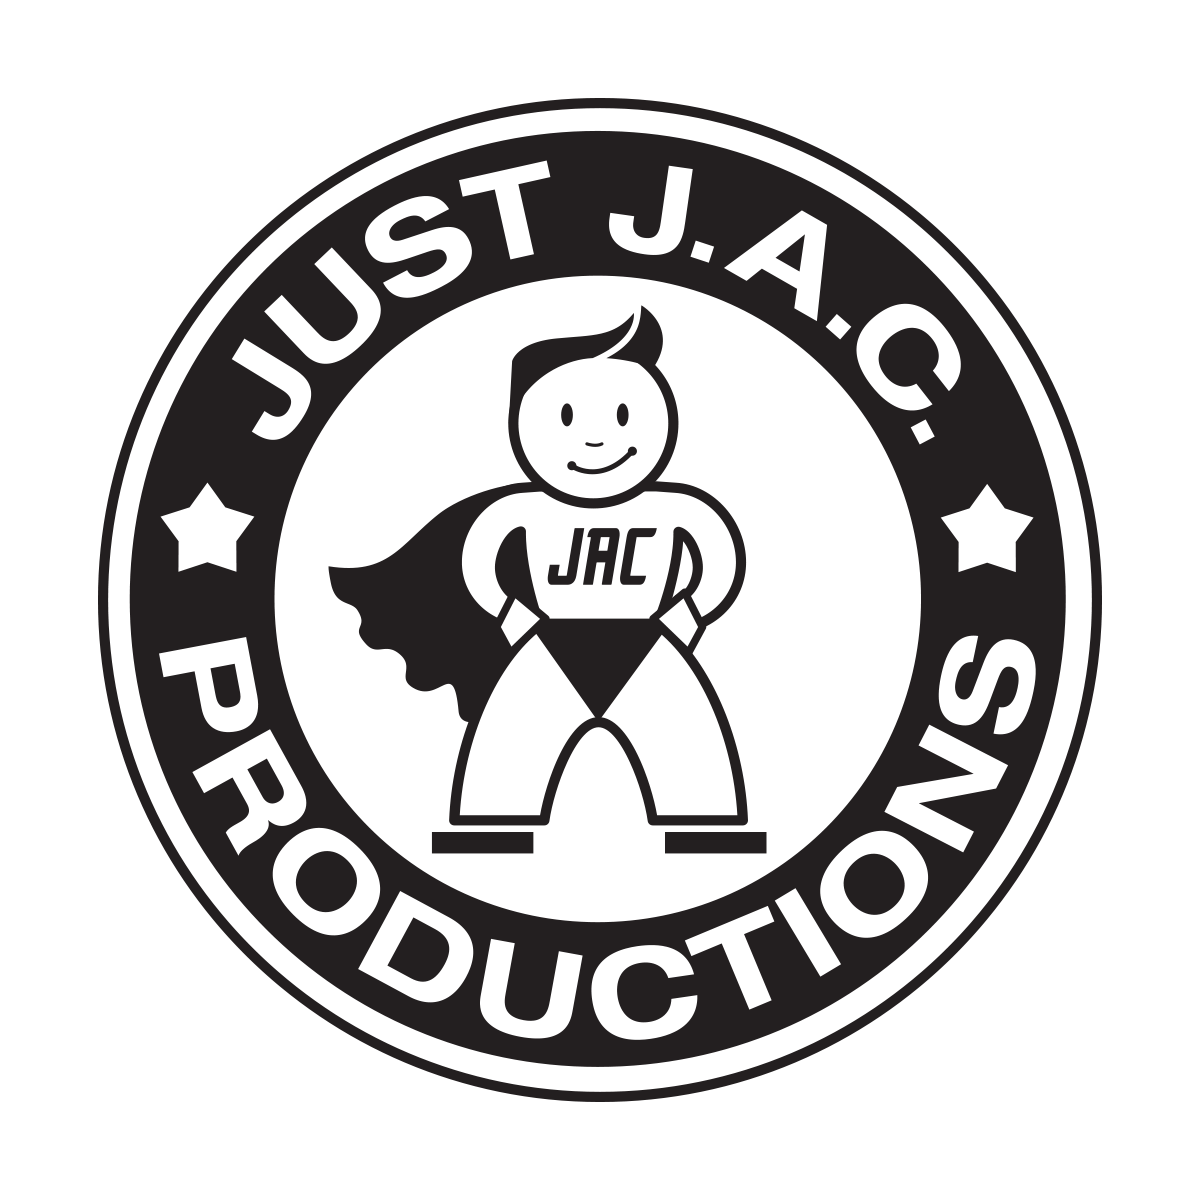 Just J.A.C. Productions